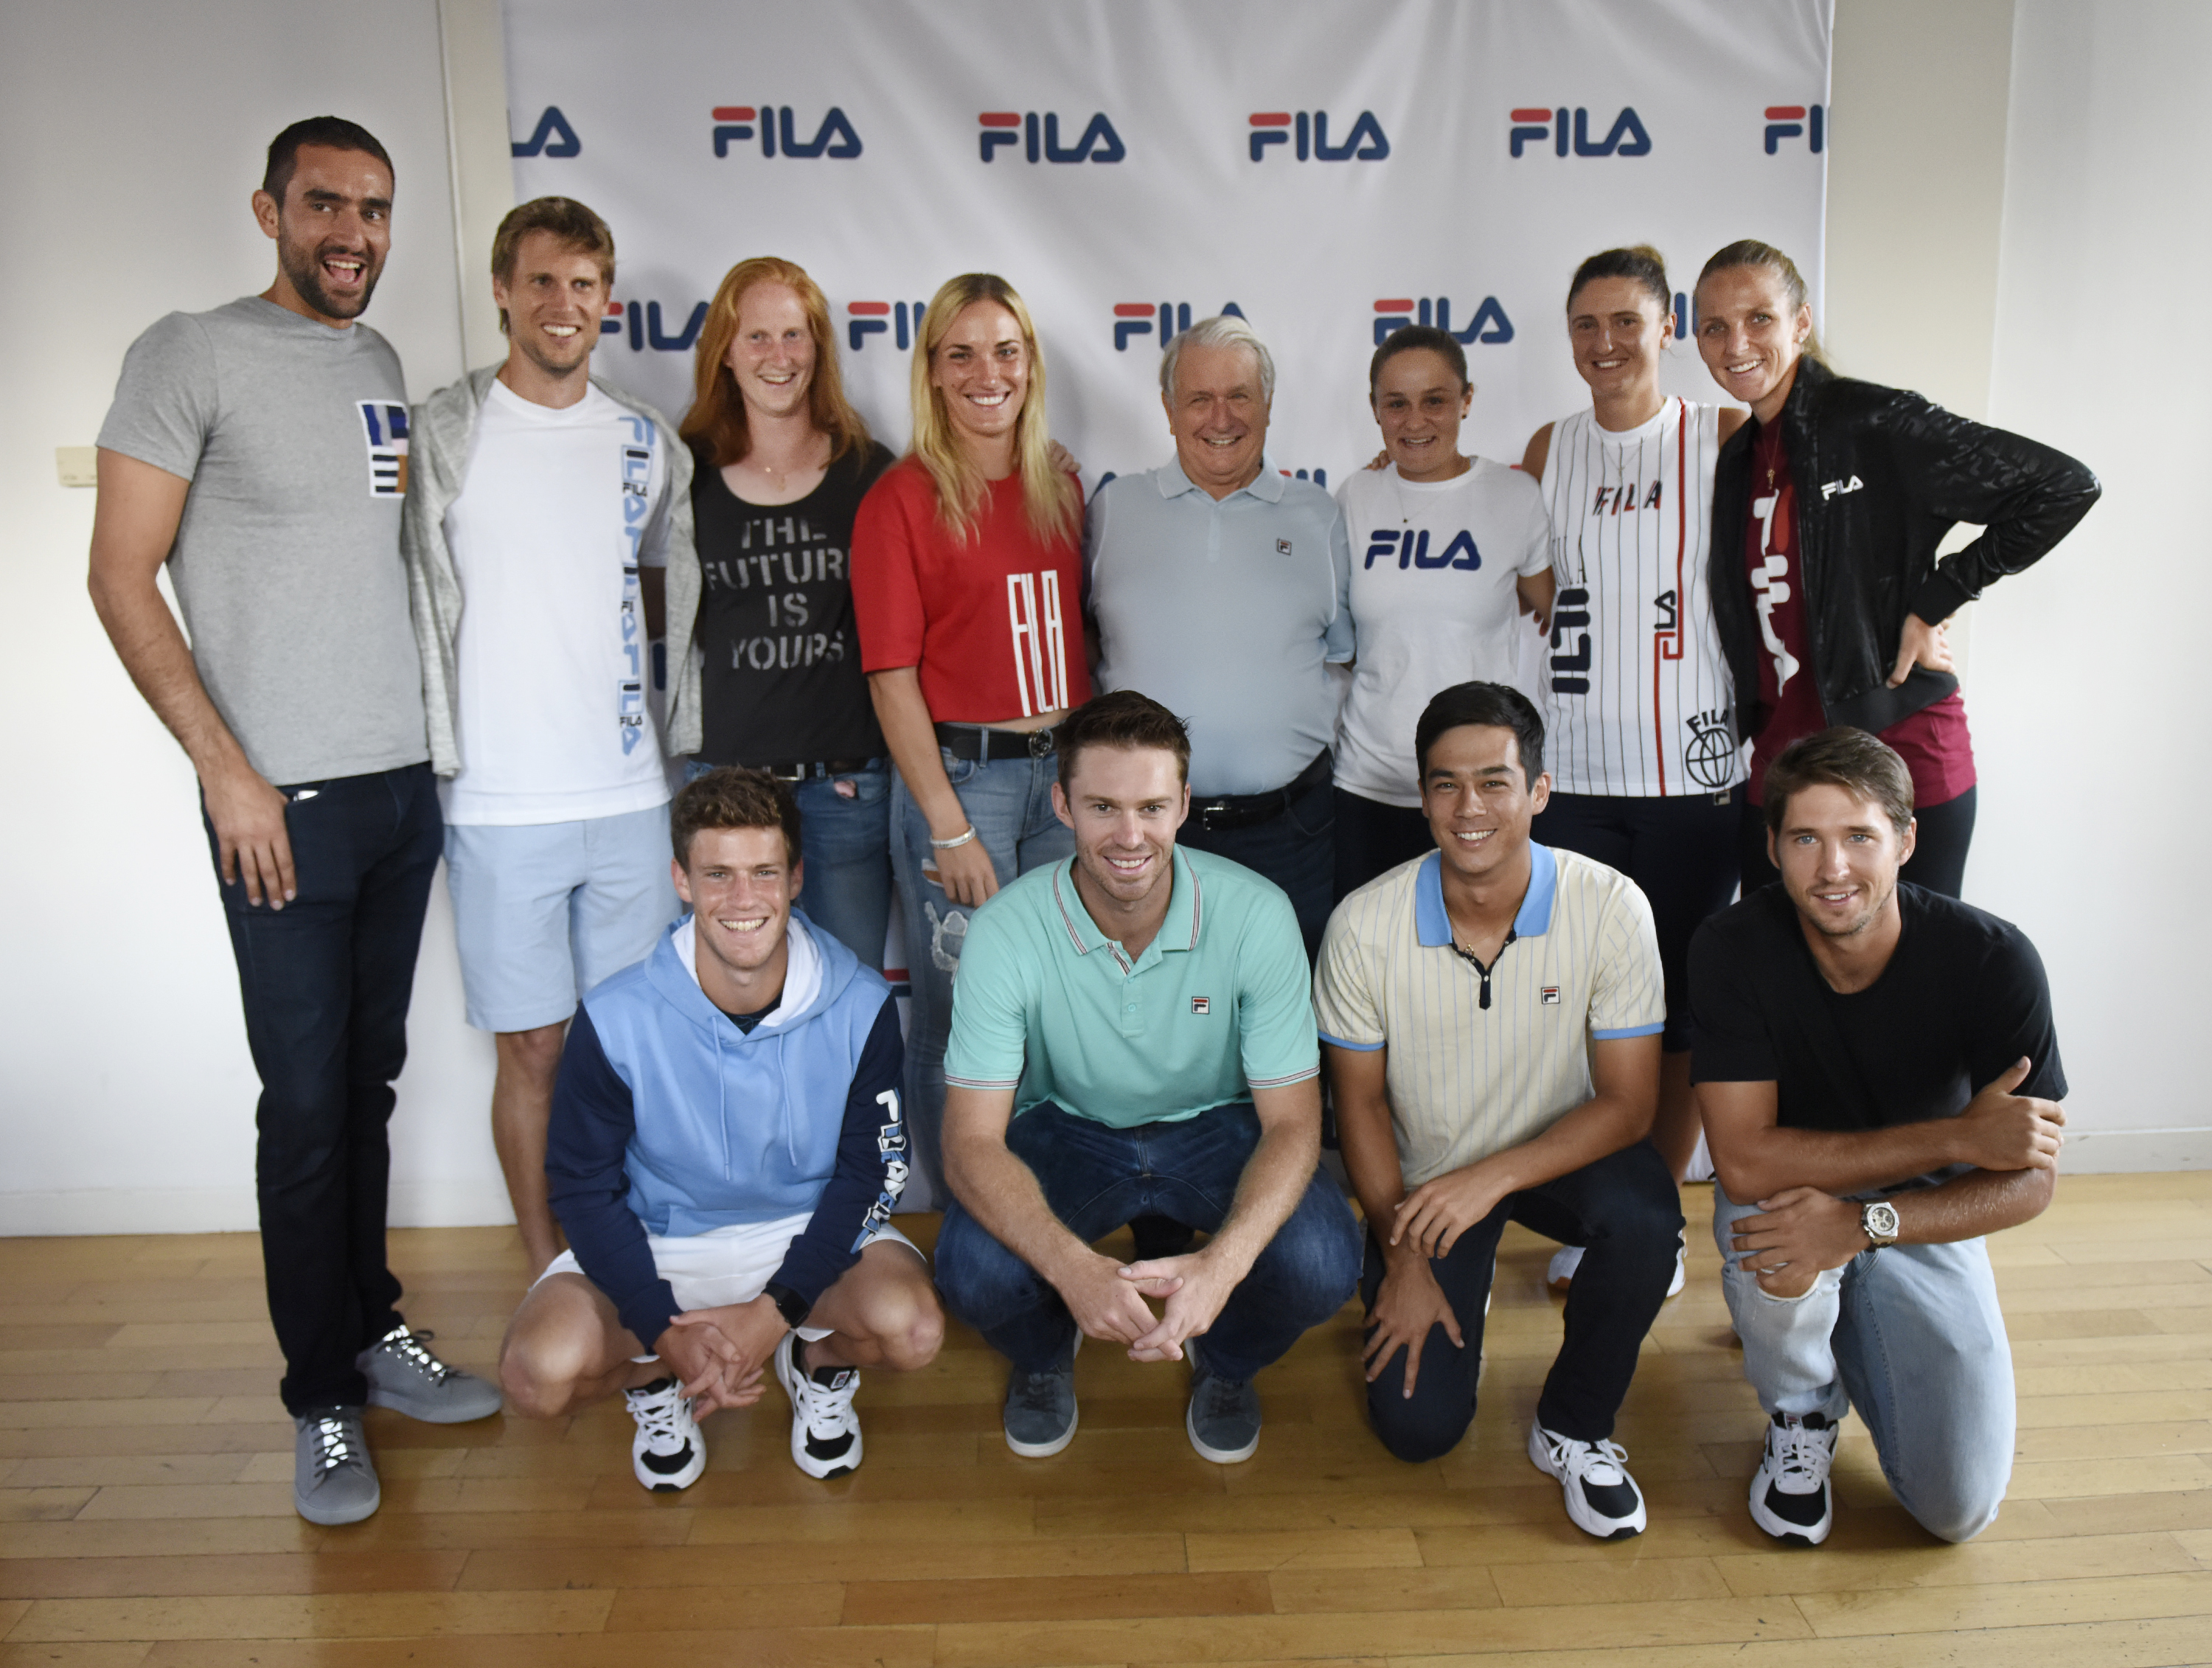 FILA tennis event at Bryant Park Hotel, 8.24.2018.